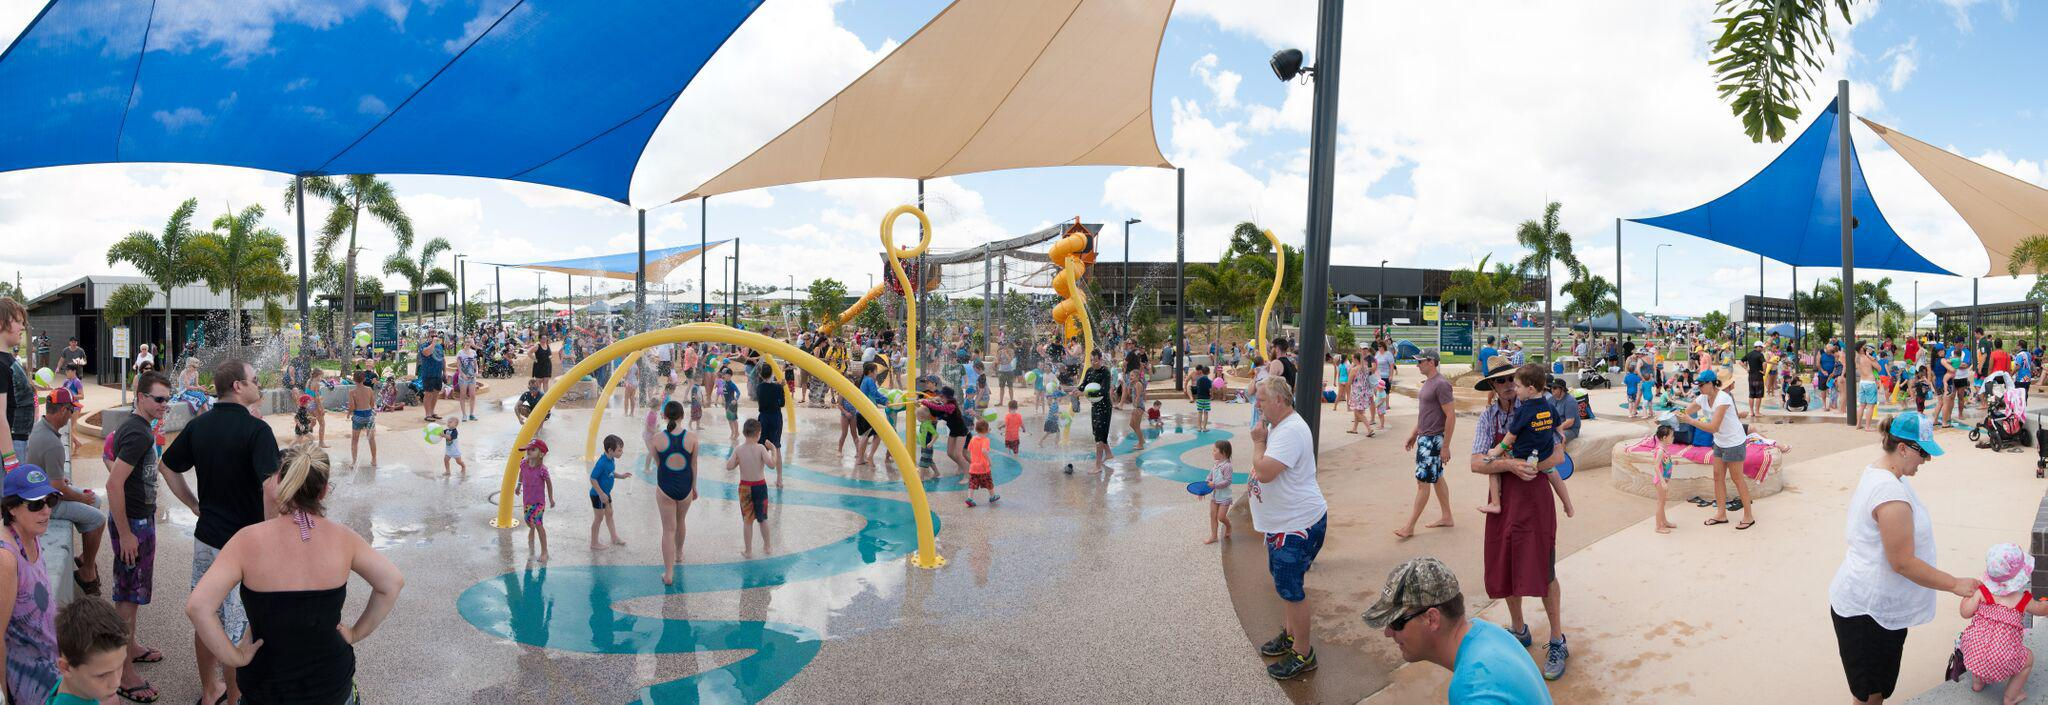 The Splash'n'Play water park at Providence